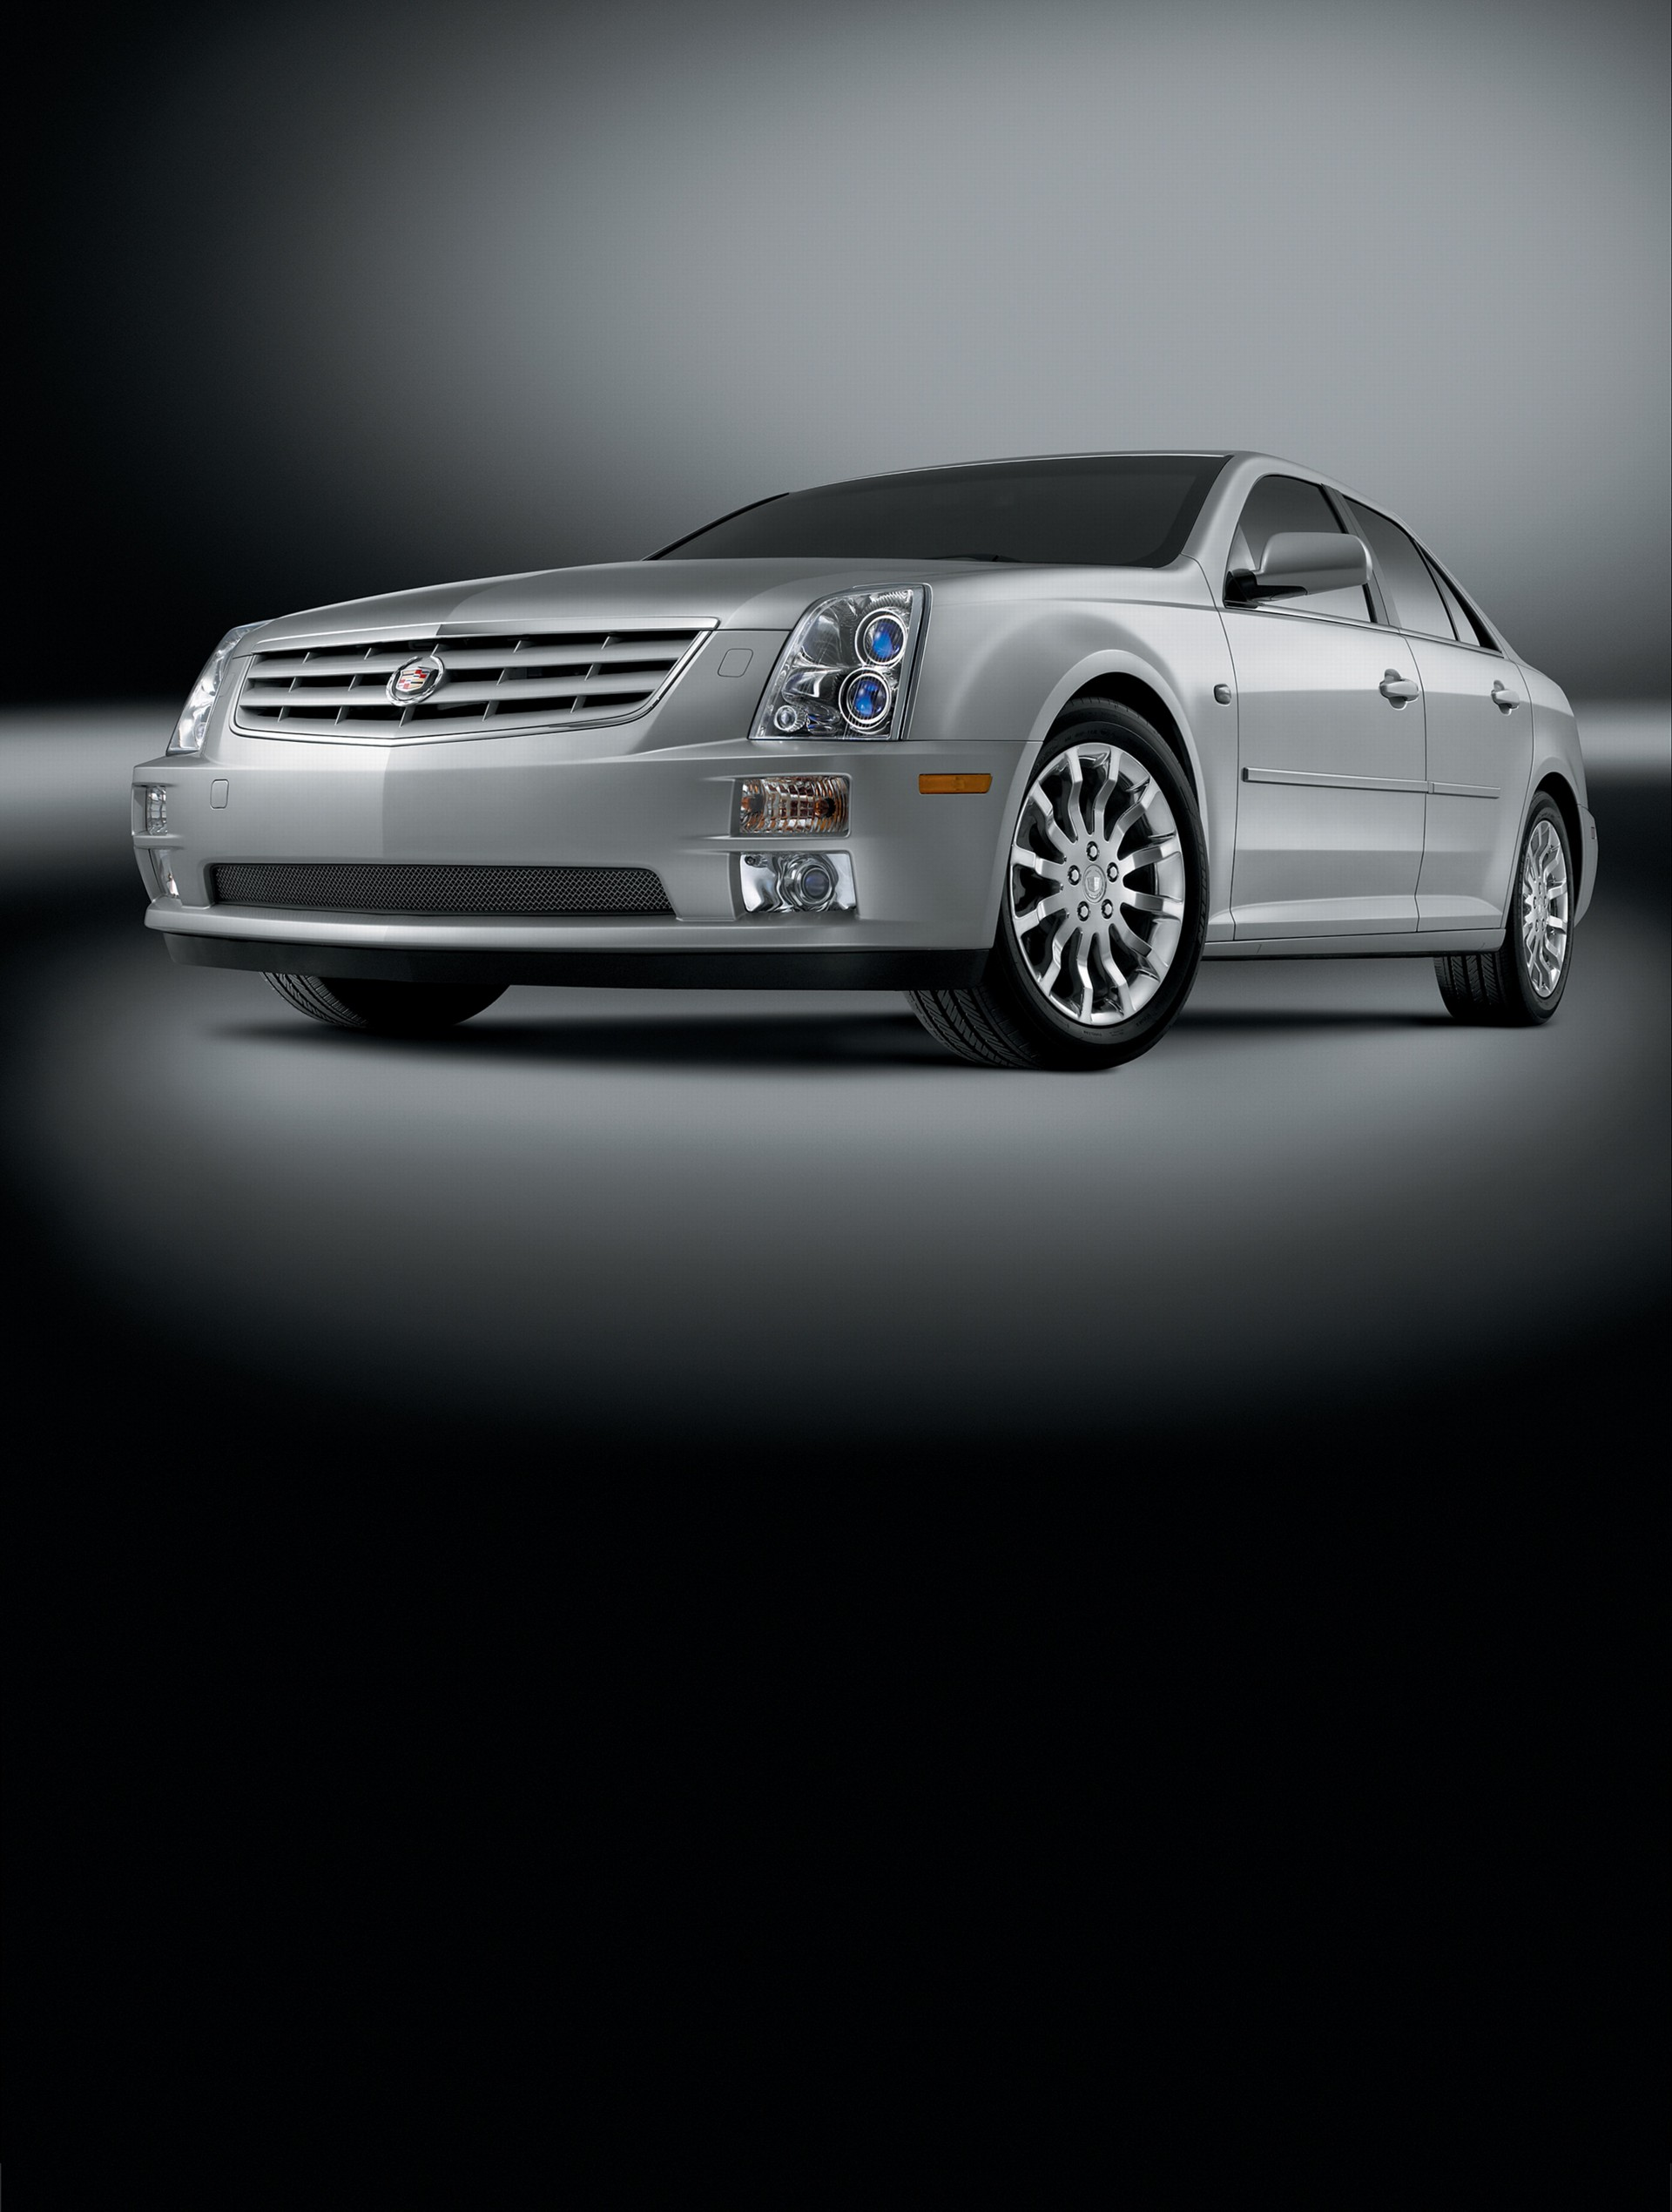 2007 cadillac sts. Black Bedroom Furniture Sets. Home Design Ideas